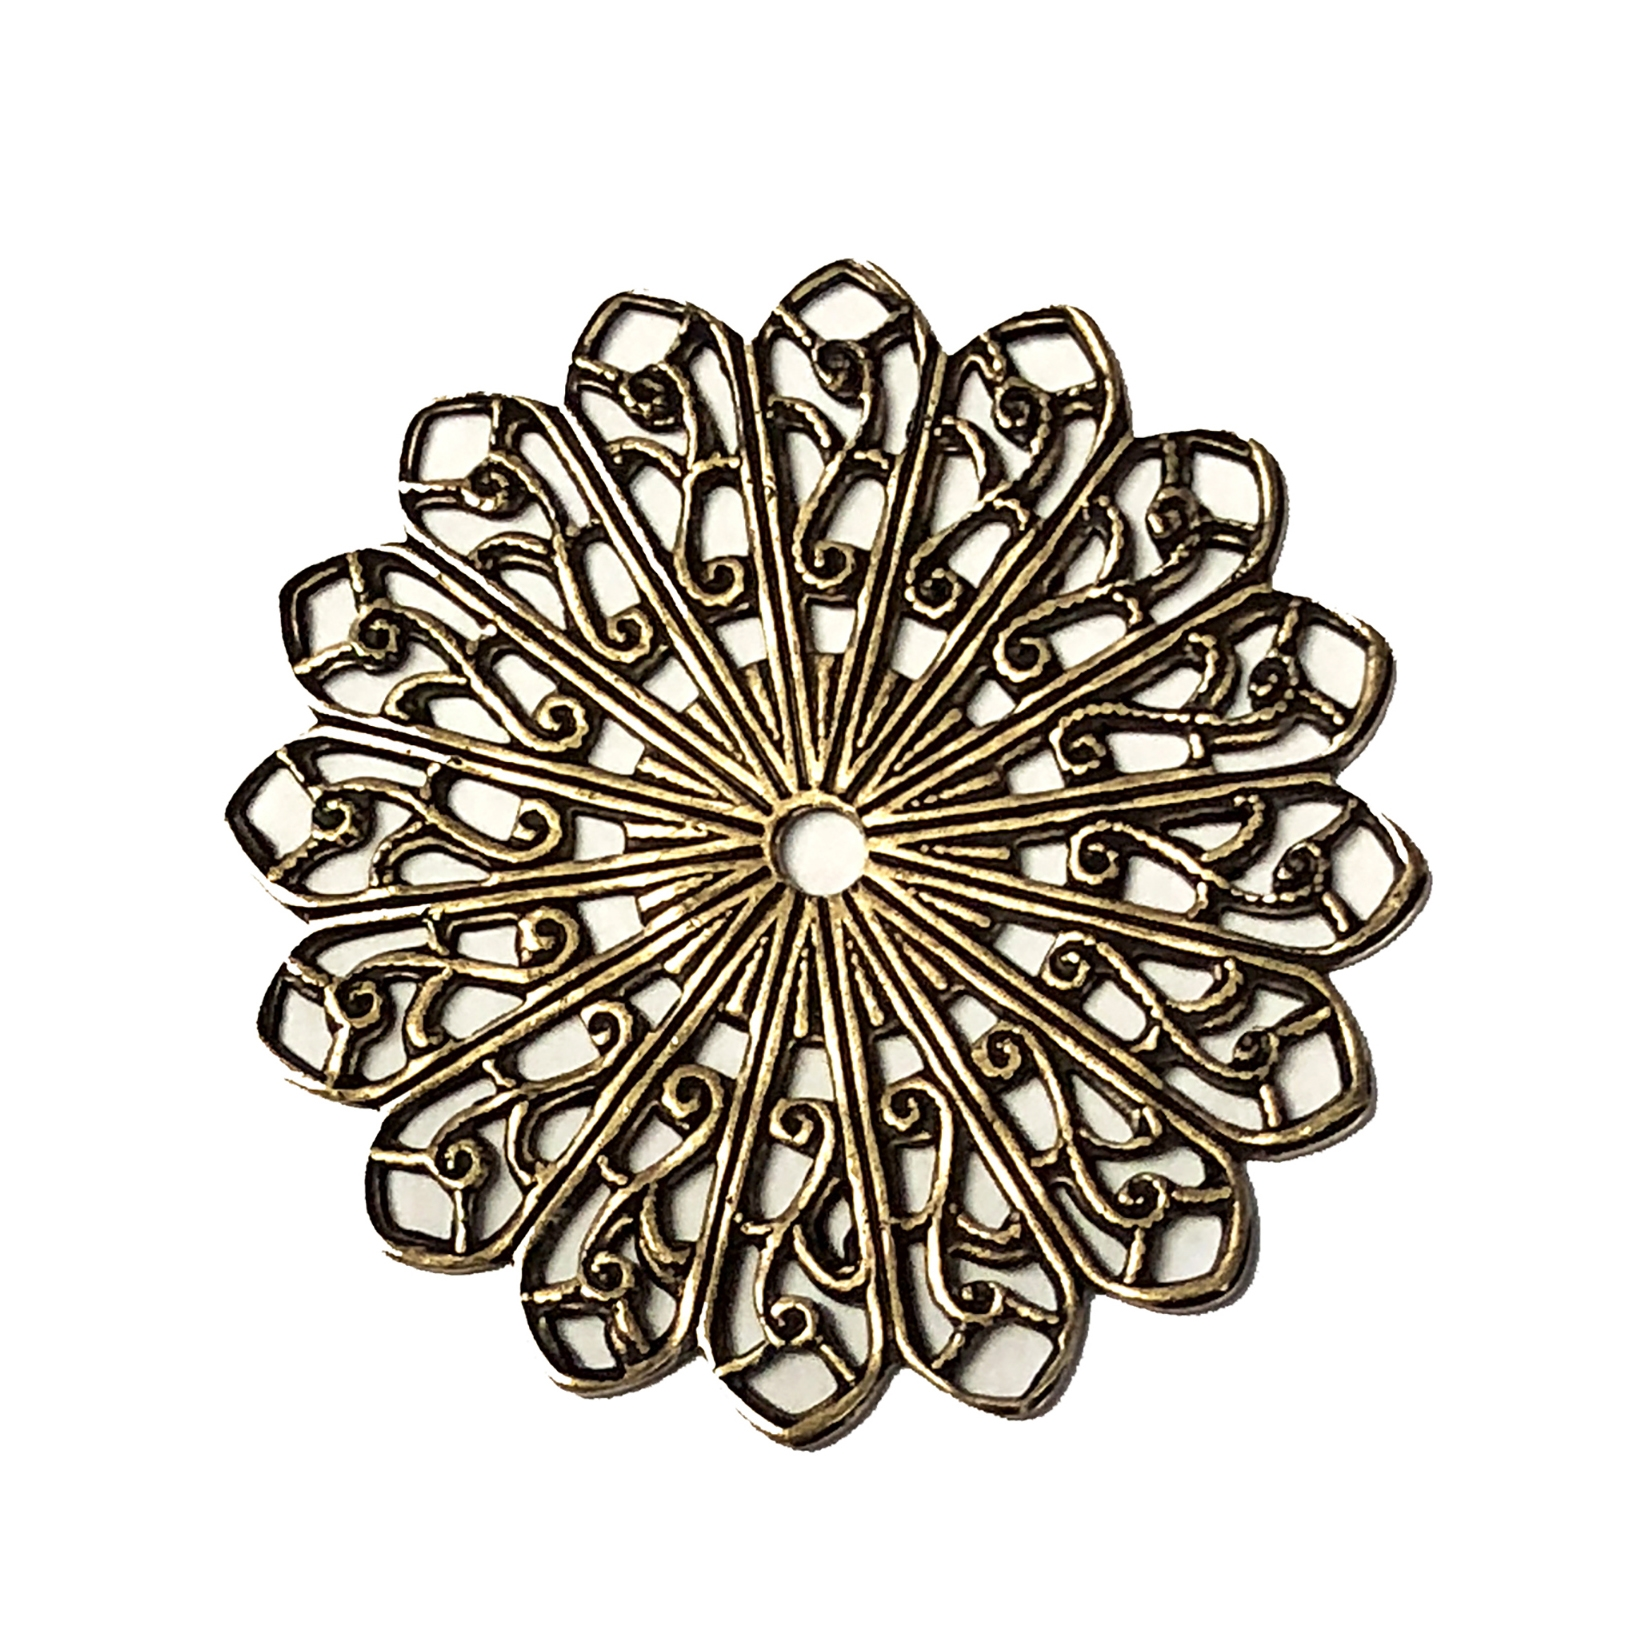 brass filigree, pinwheel style, brass ox, 02548, vintage jewelry supplies, jewelry making supplies, beading supplies, antique brass, brass findings, jewelry findings, US made jewelry supplies, nickel free, bsueboutiuqes